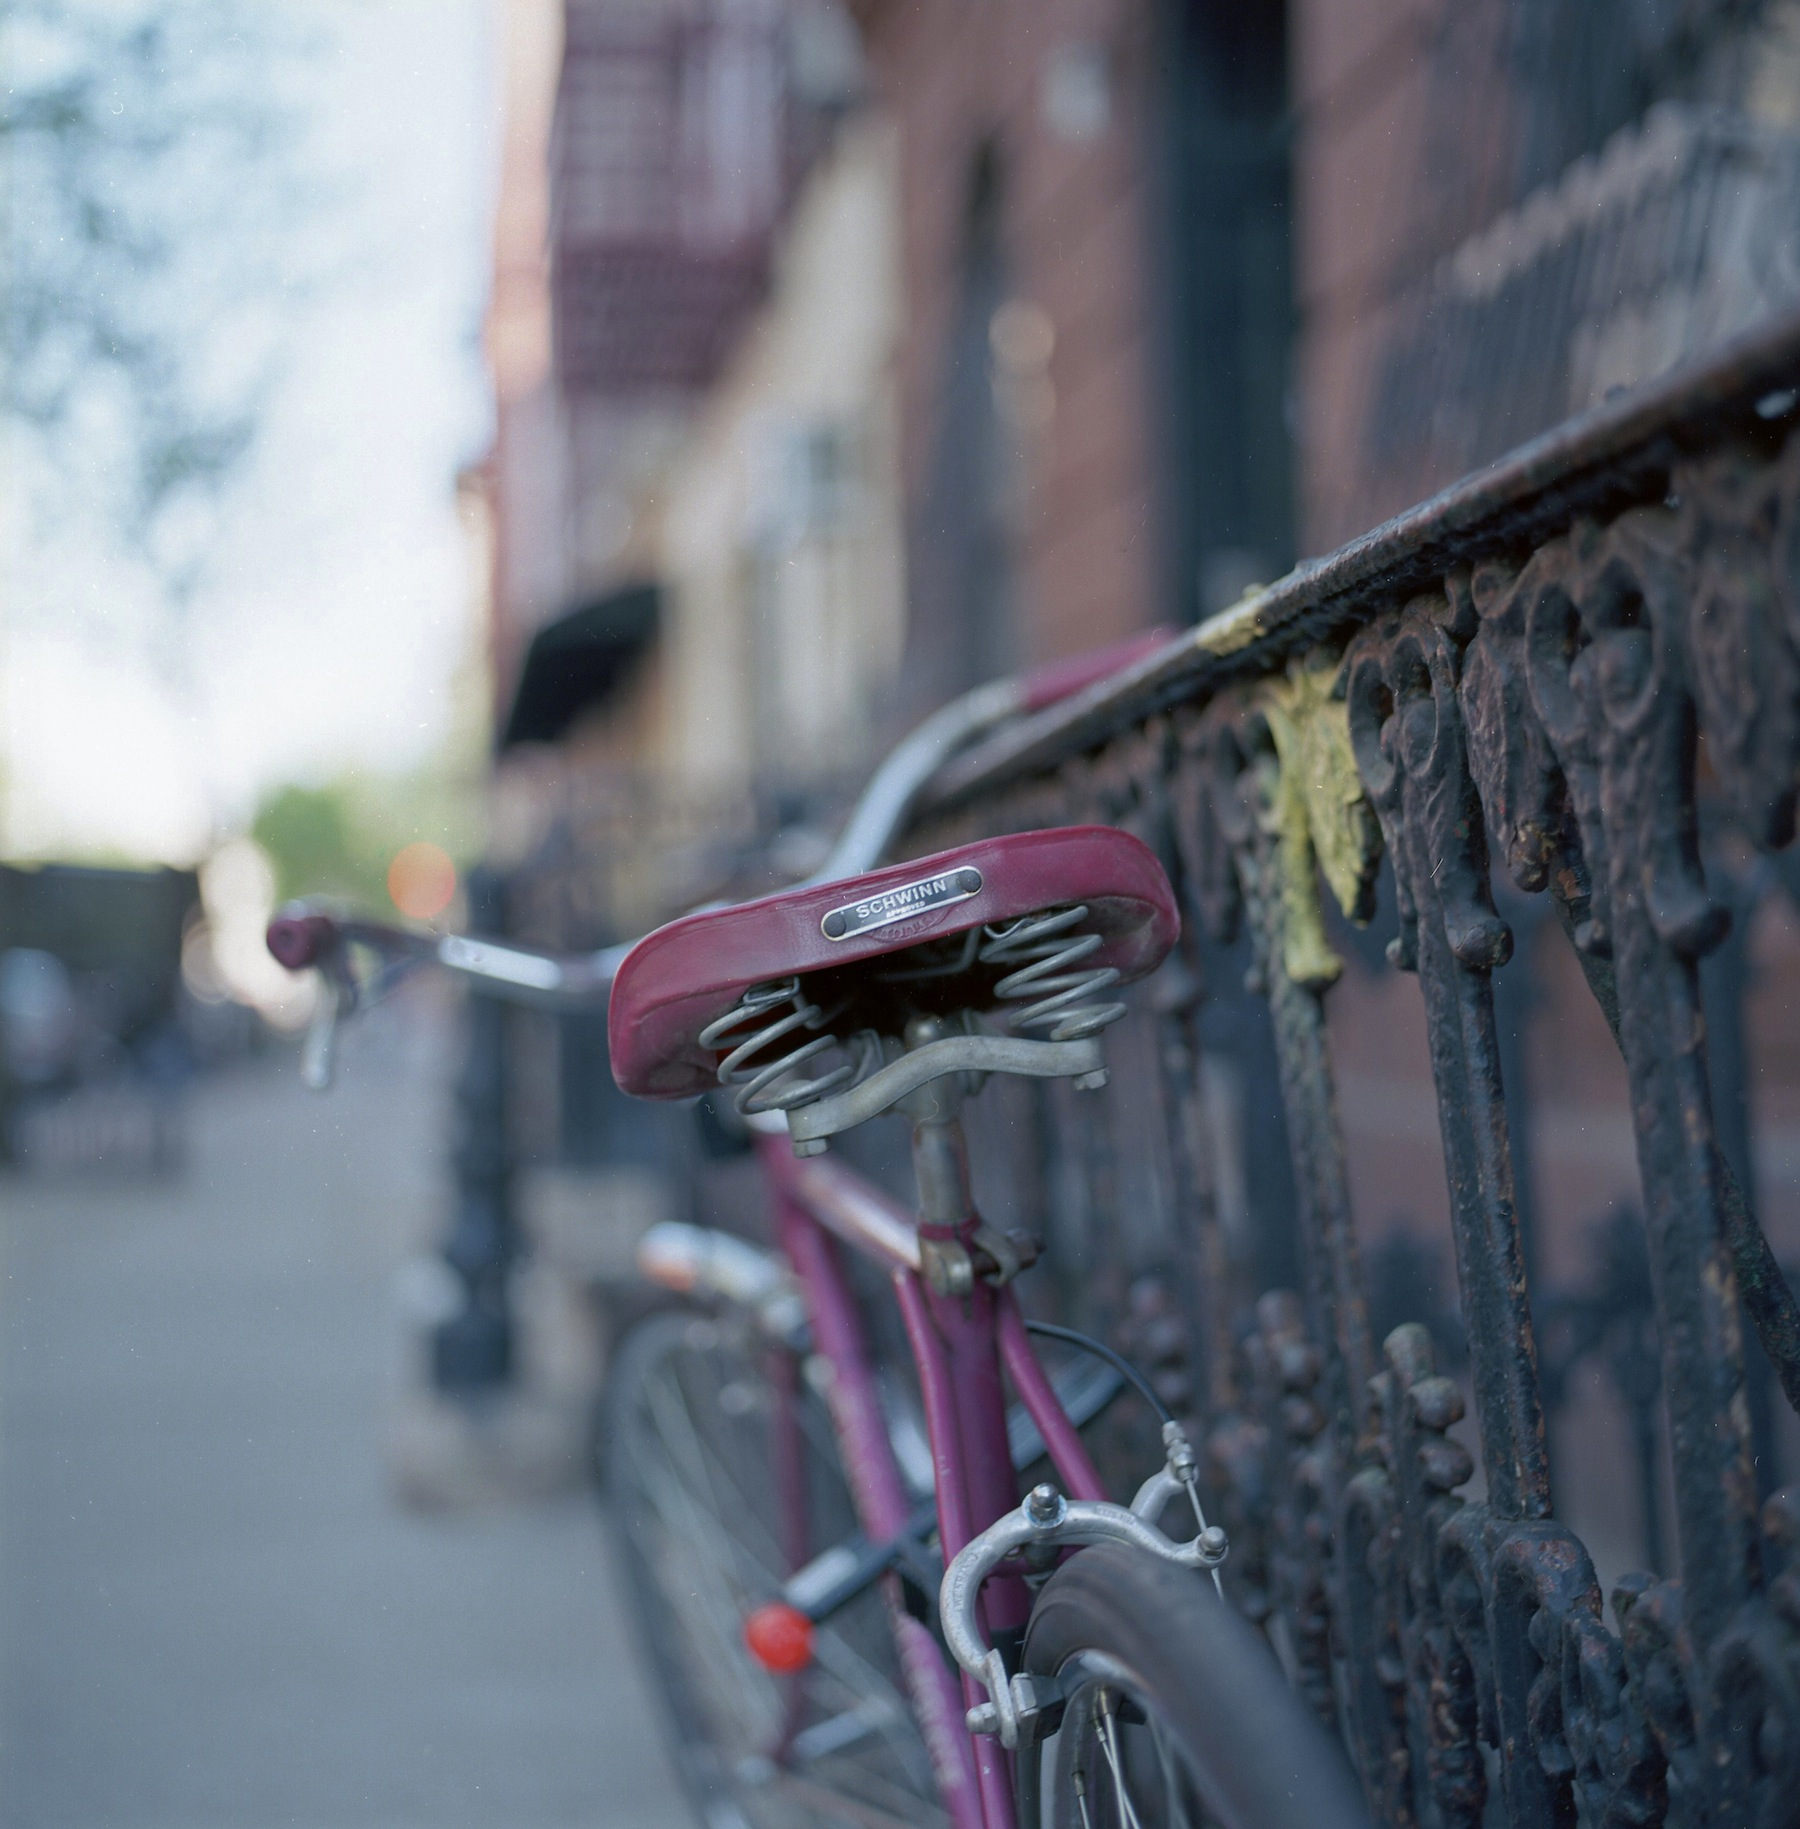 Schwinn Seat, East Village